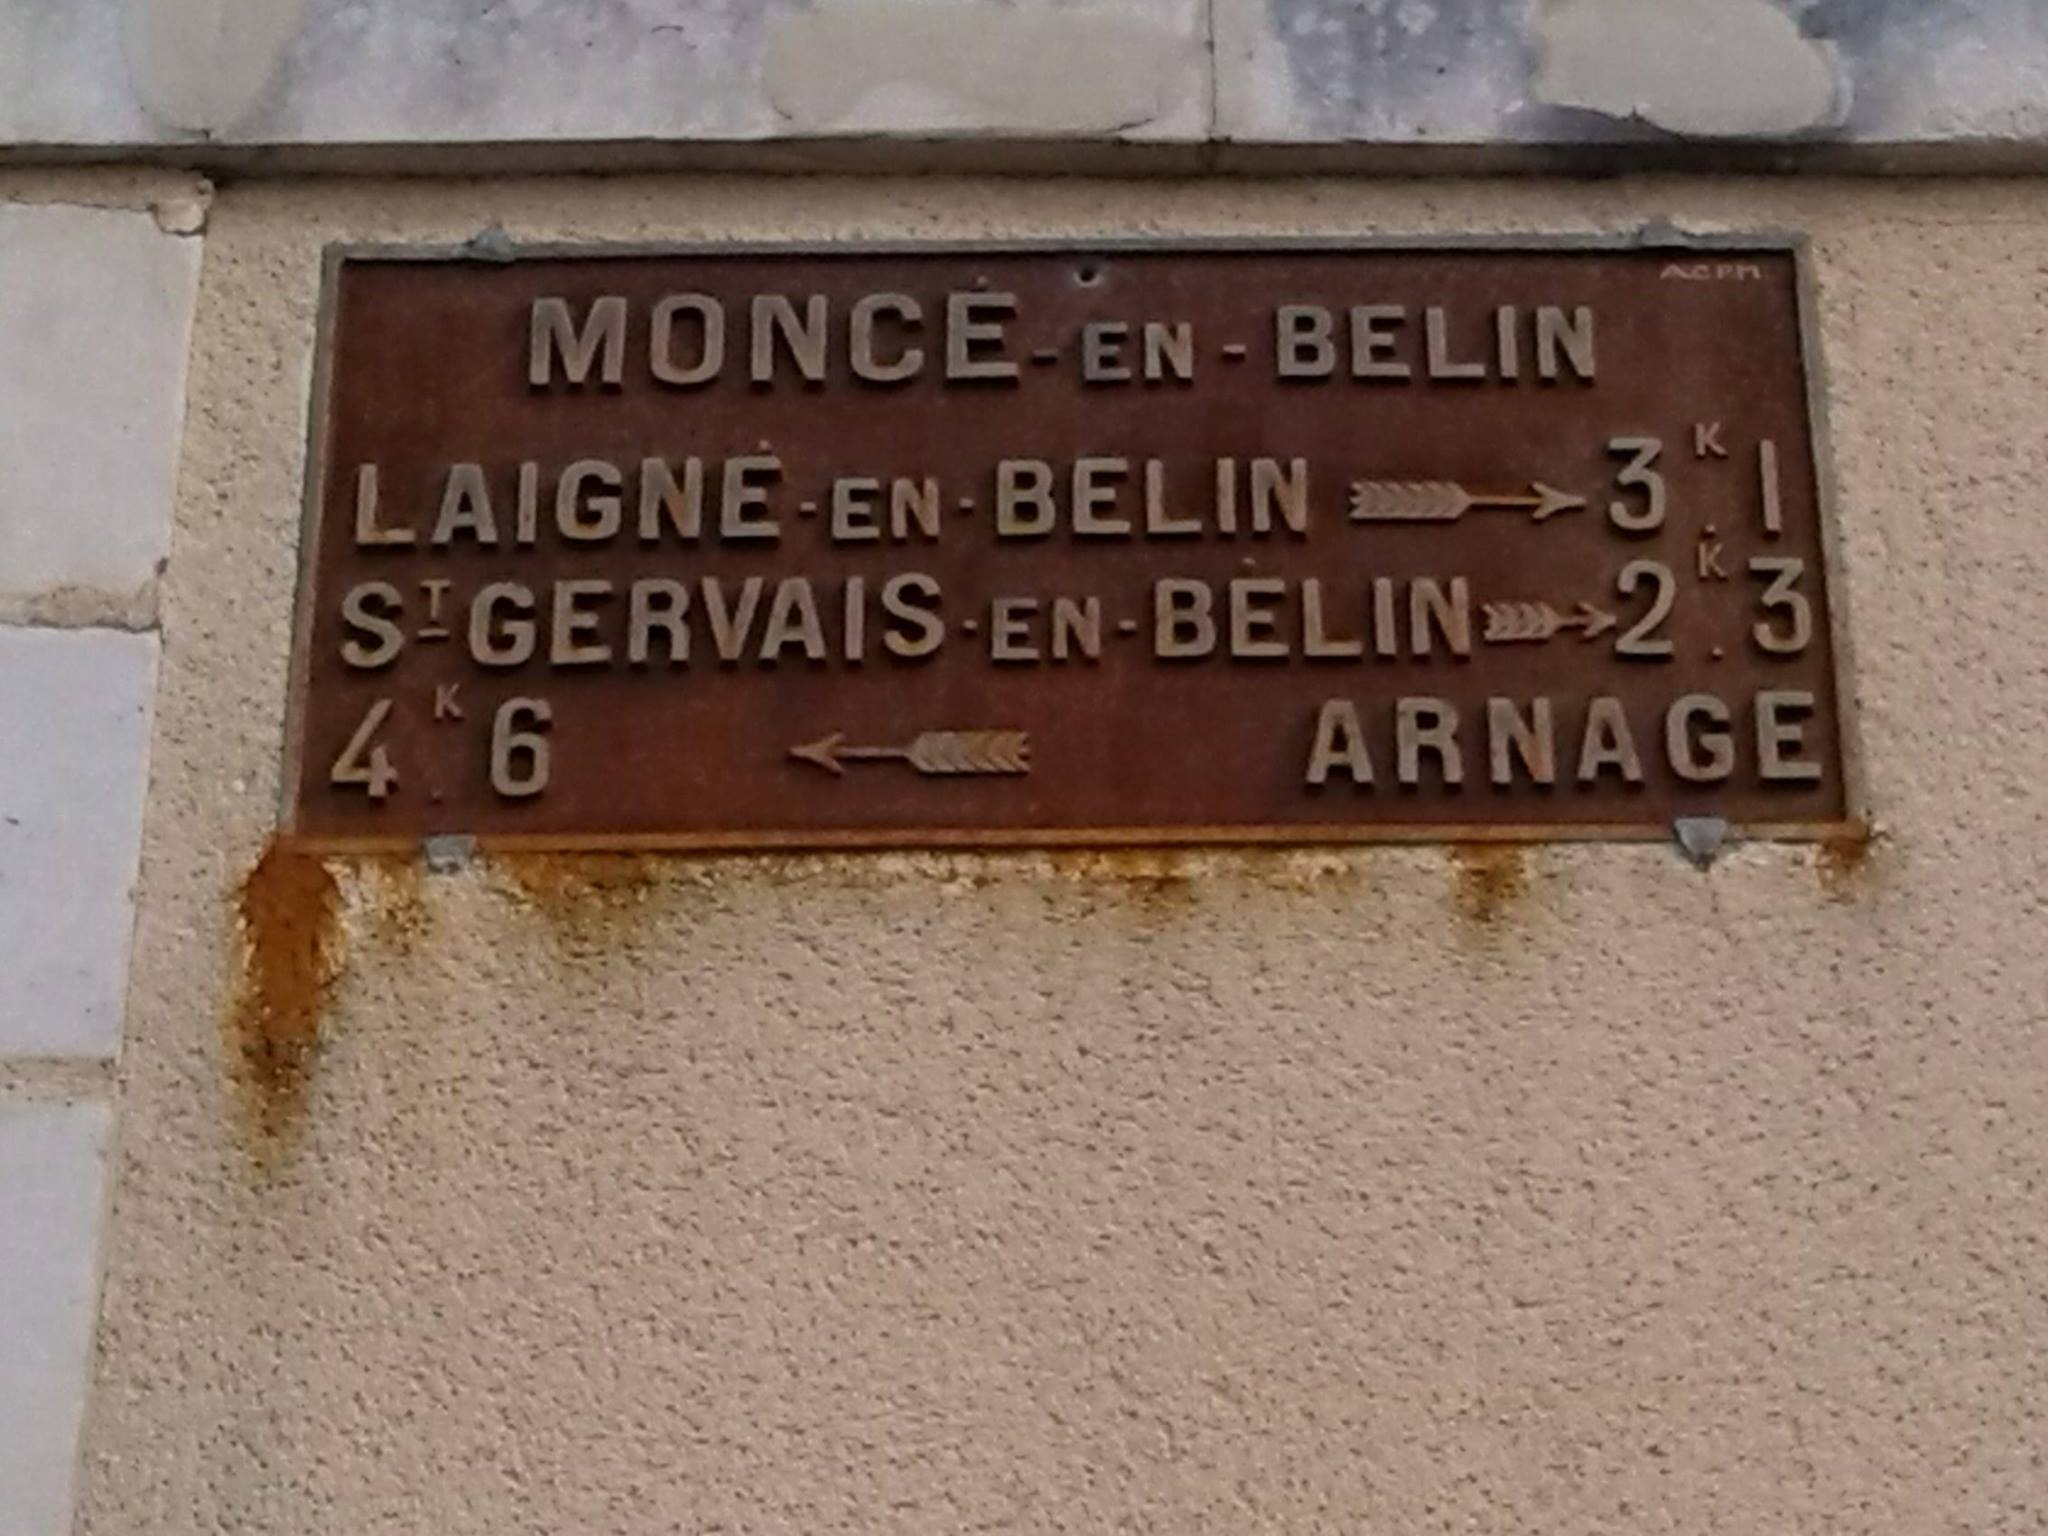 Moncé en Belin - Plaque de cocher - Laigné en Belin - Saint Gervais en Belin - Arnage (Jean-Guy Busson)